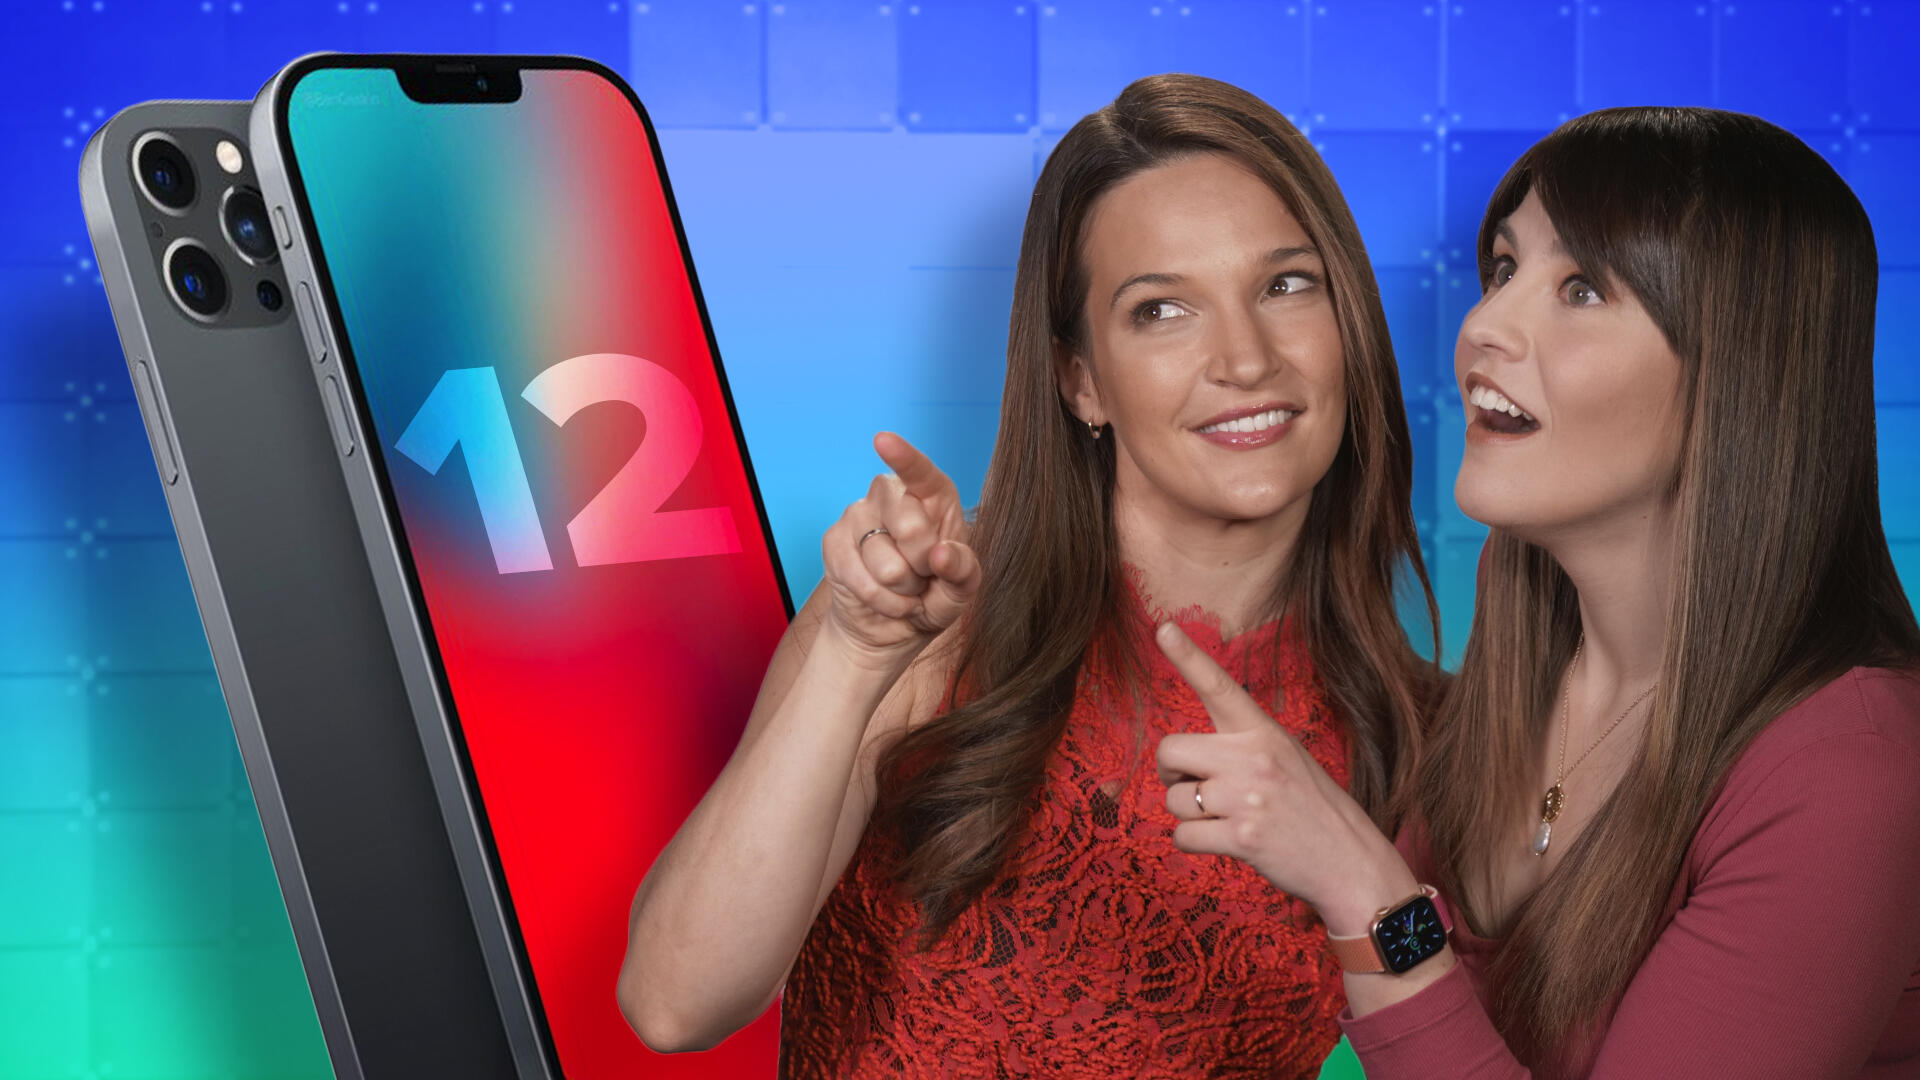 Video: iPhone 12: What we want in the next iPhone